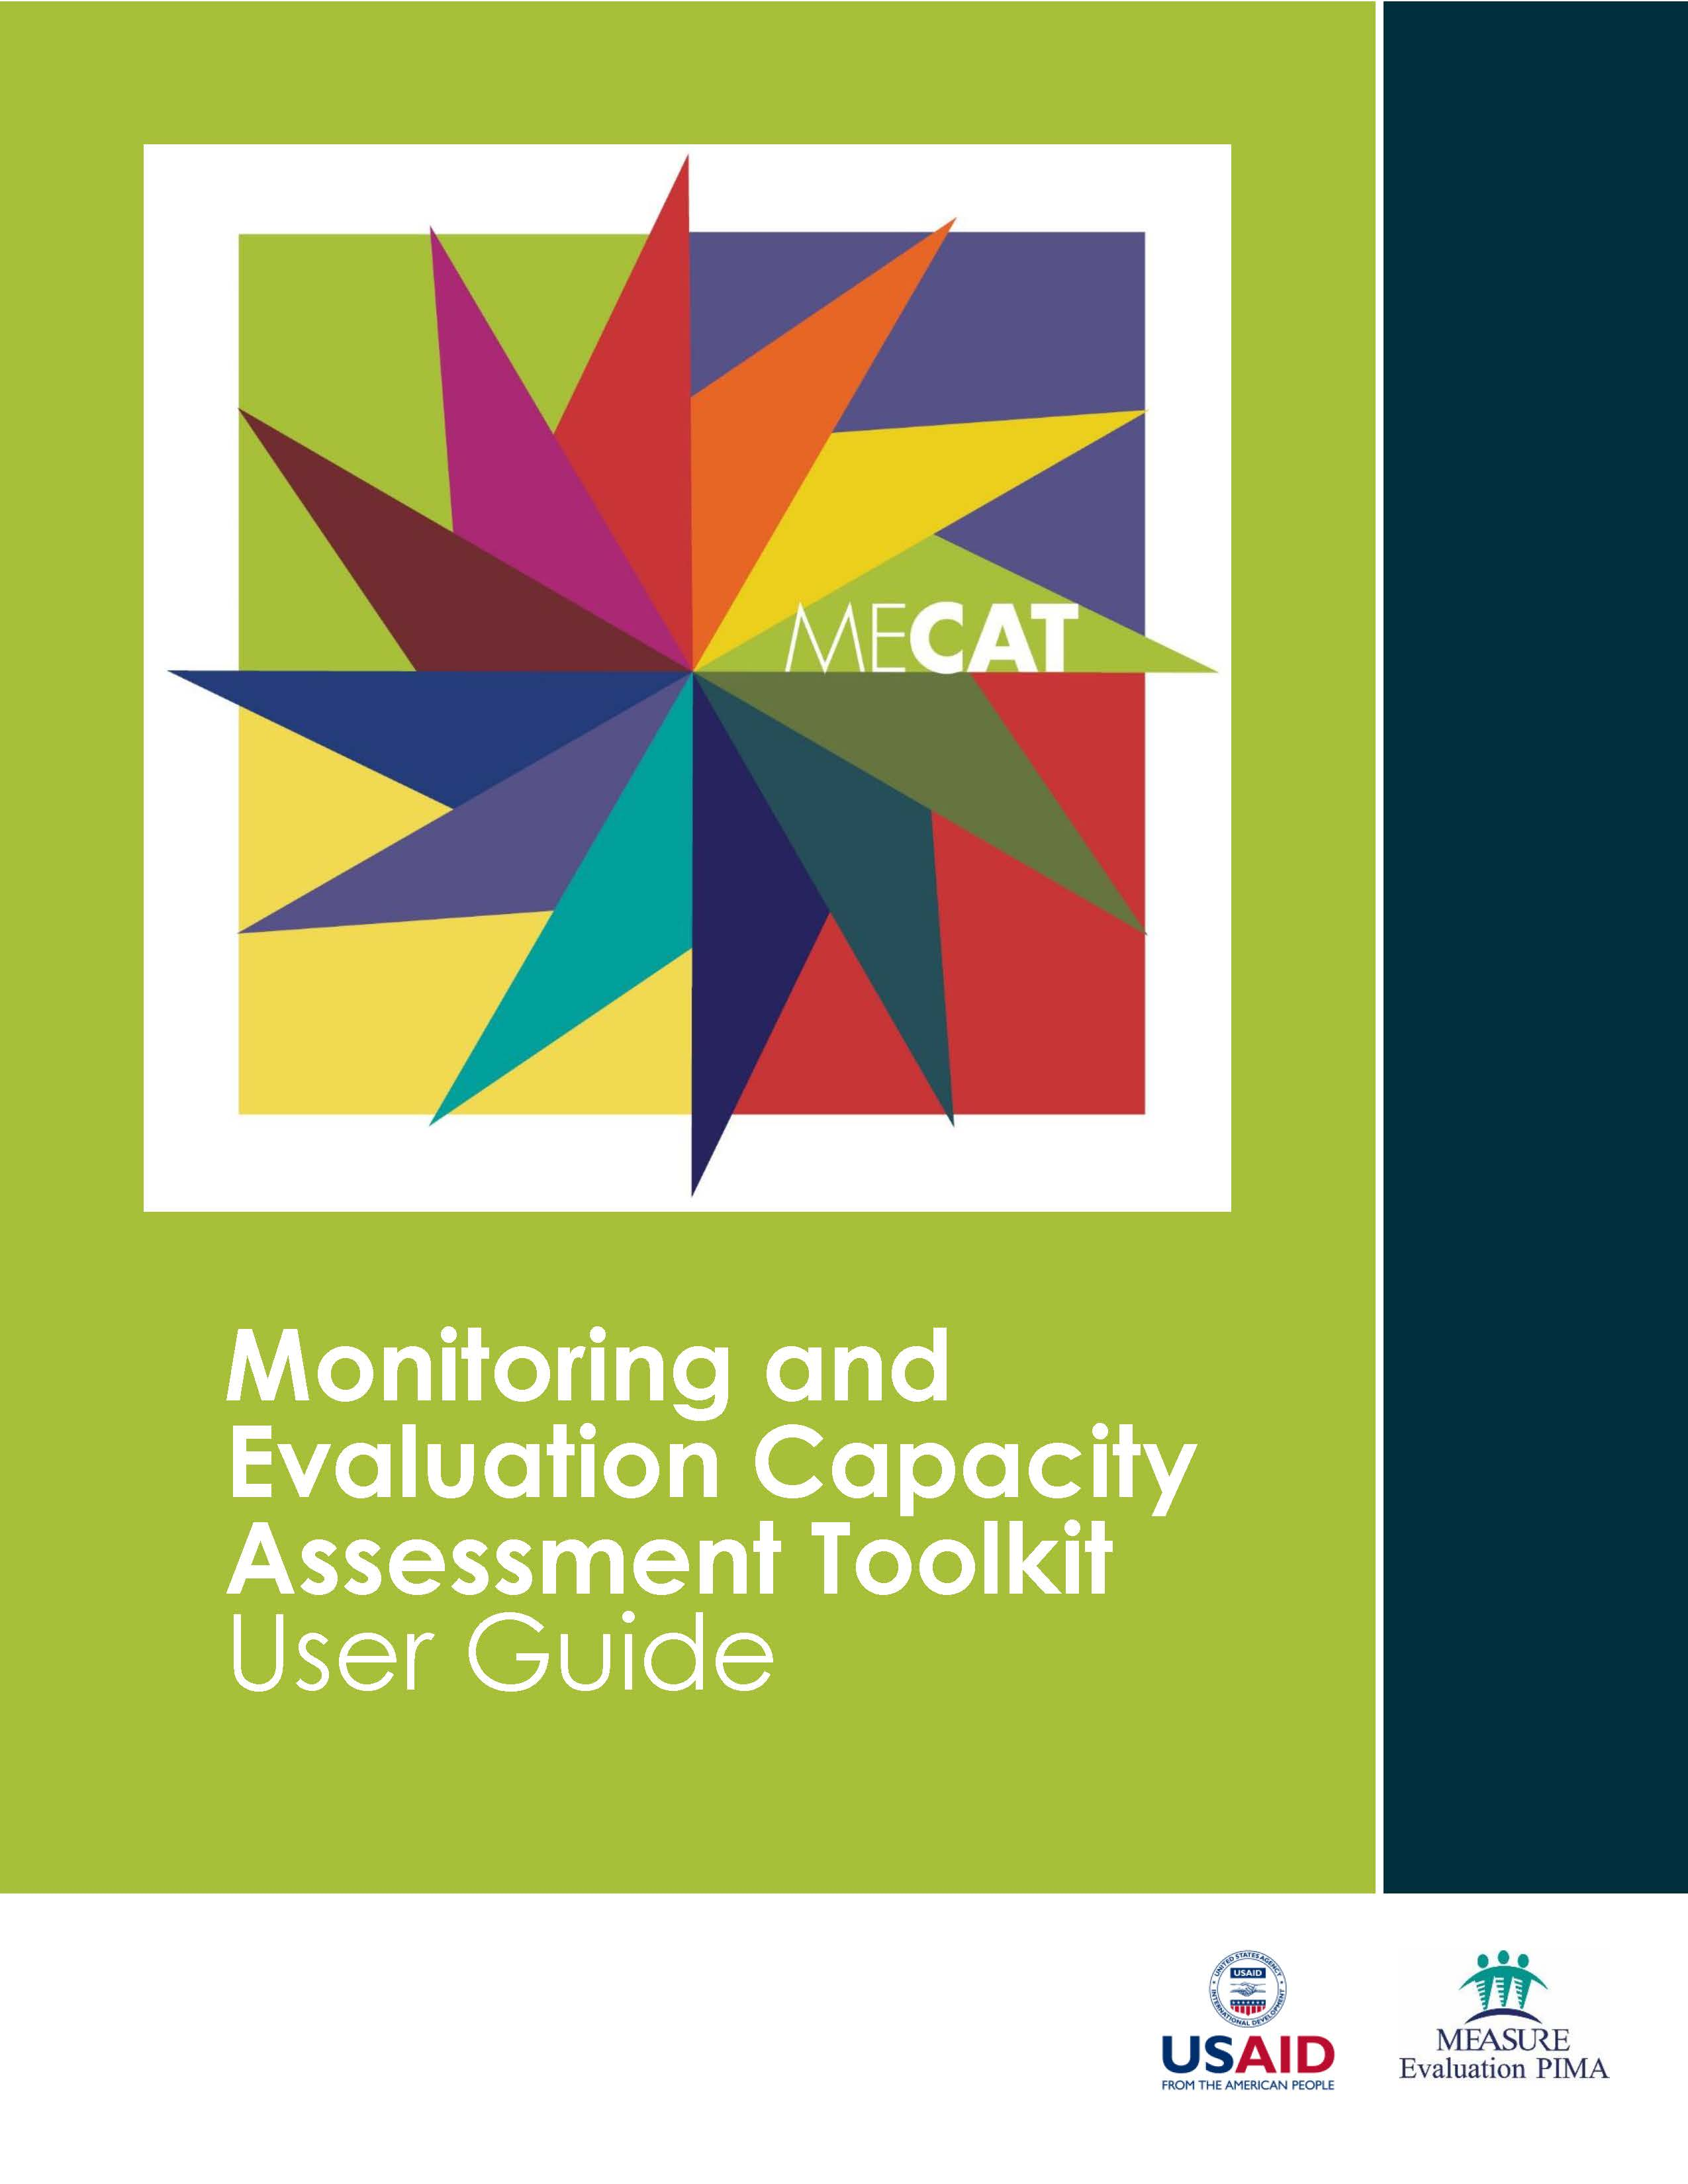 Monitoring and Evaluation Capacity Assessment Toolkit: User Guide